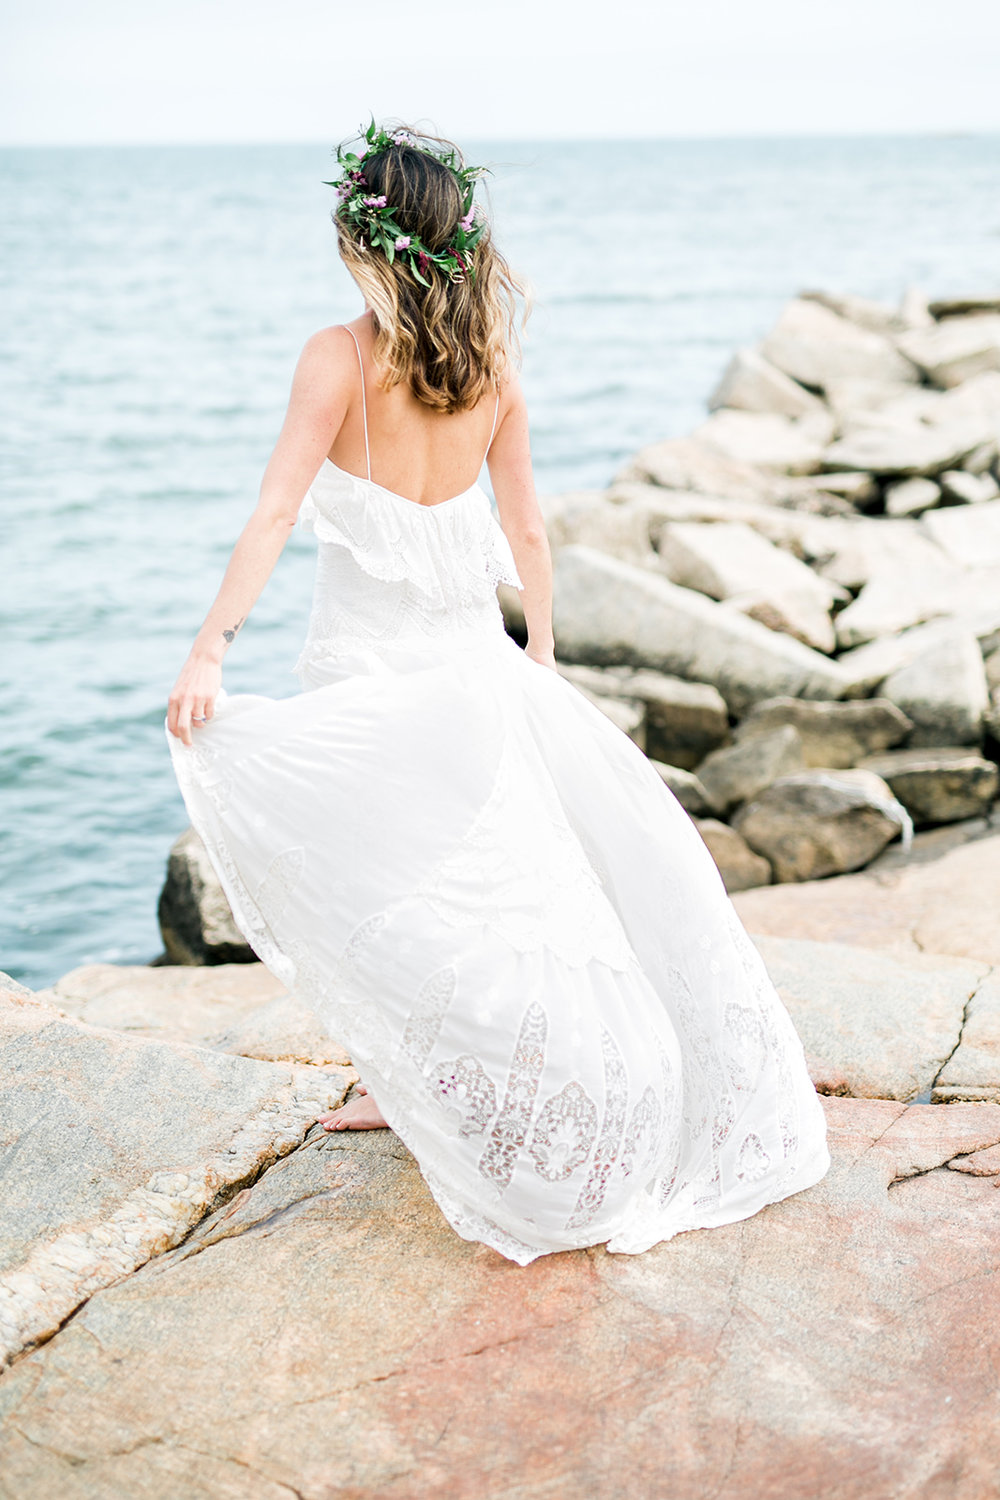 Rue De Seine bride by the water - Pearl Weddings & Events